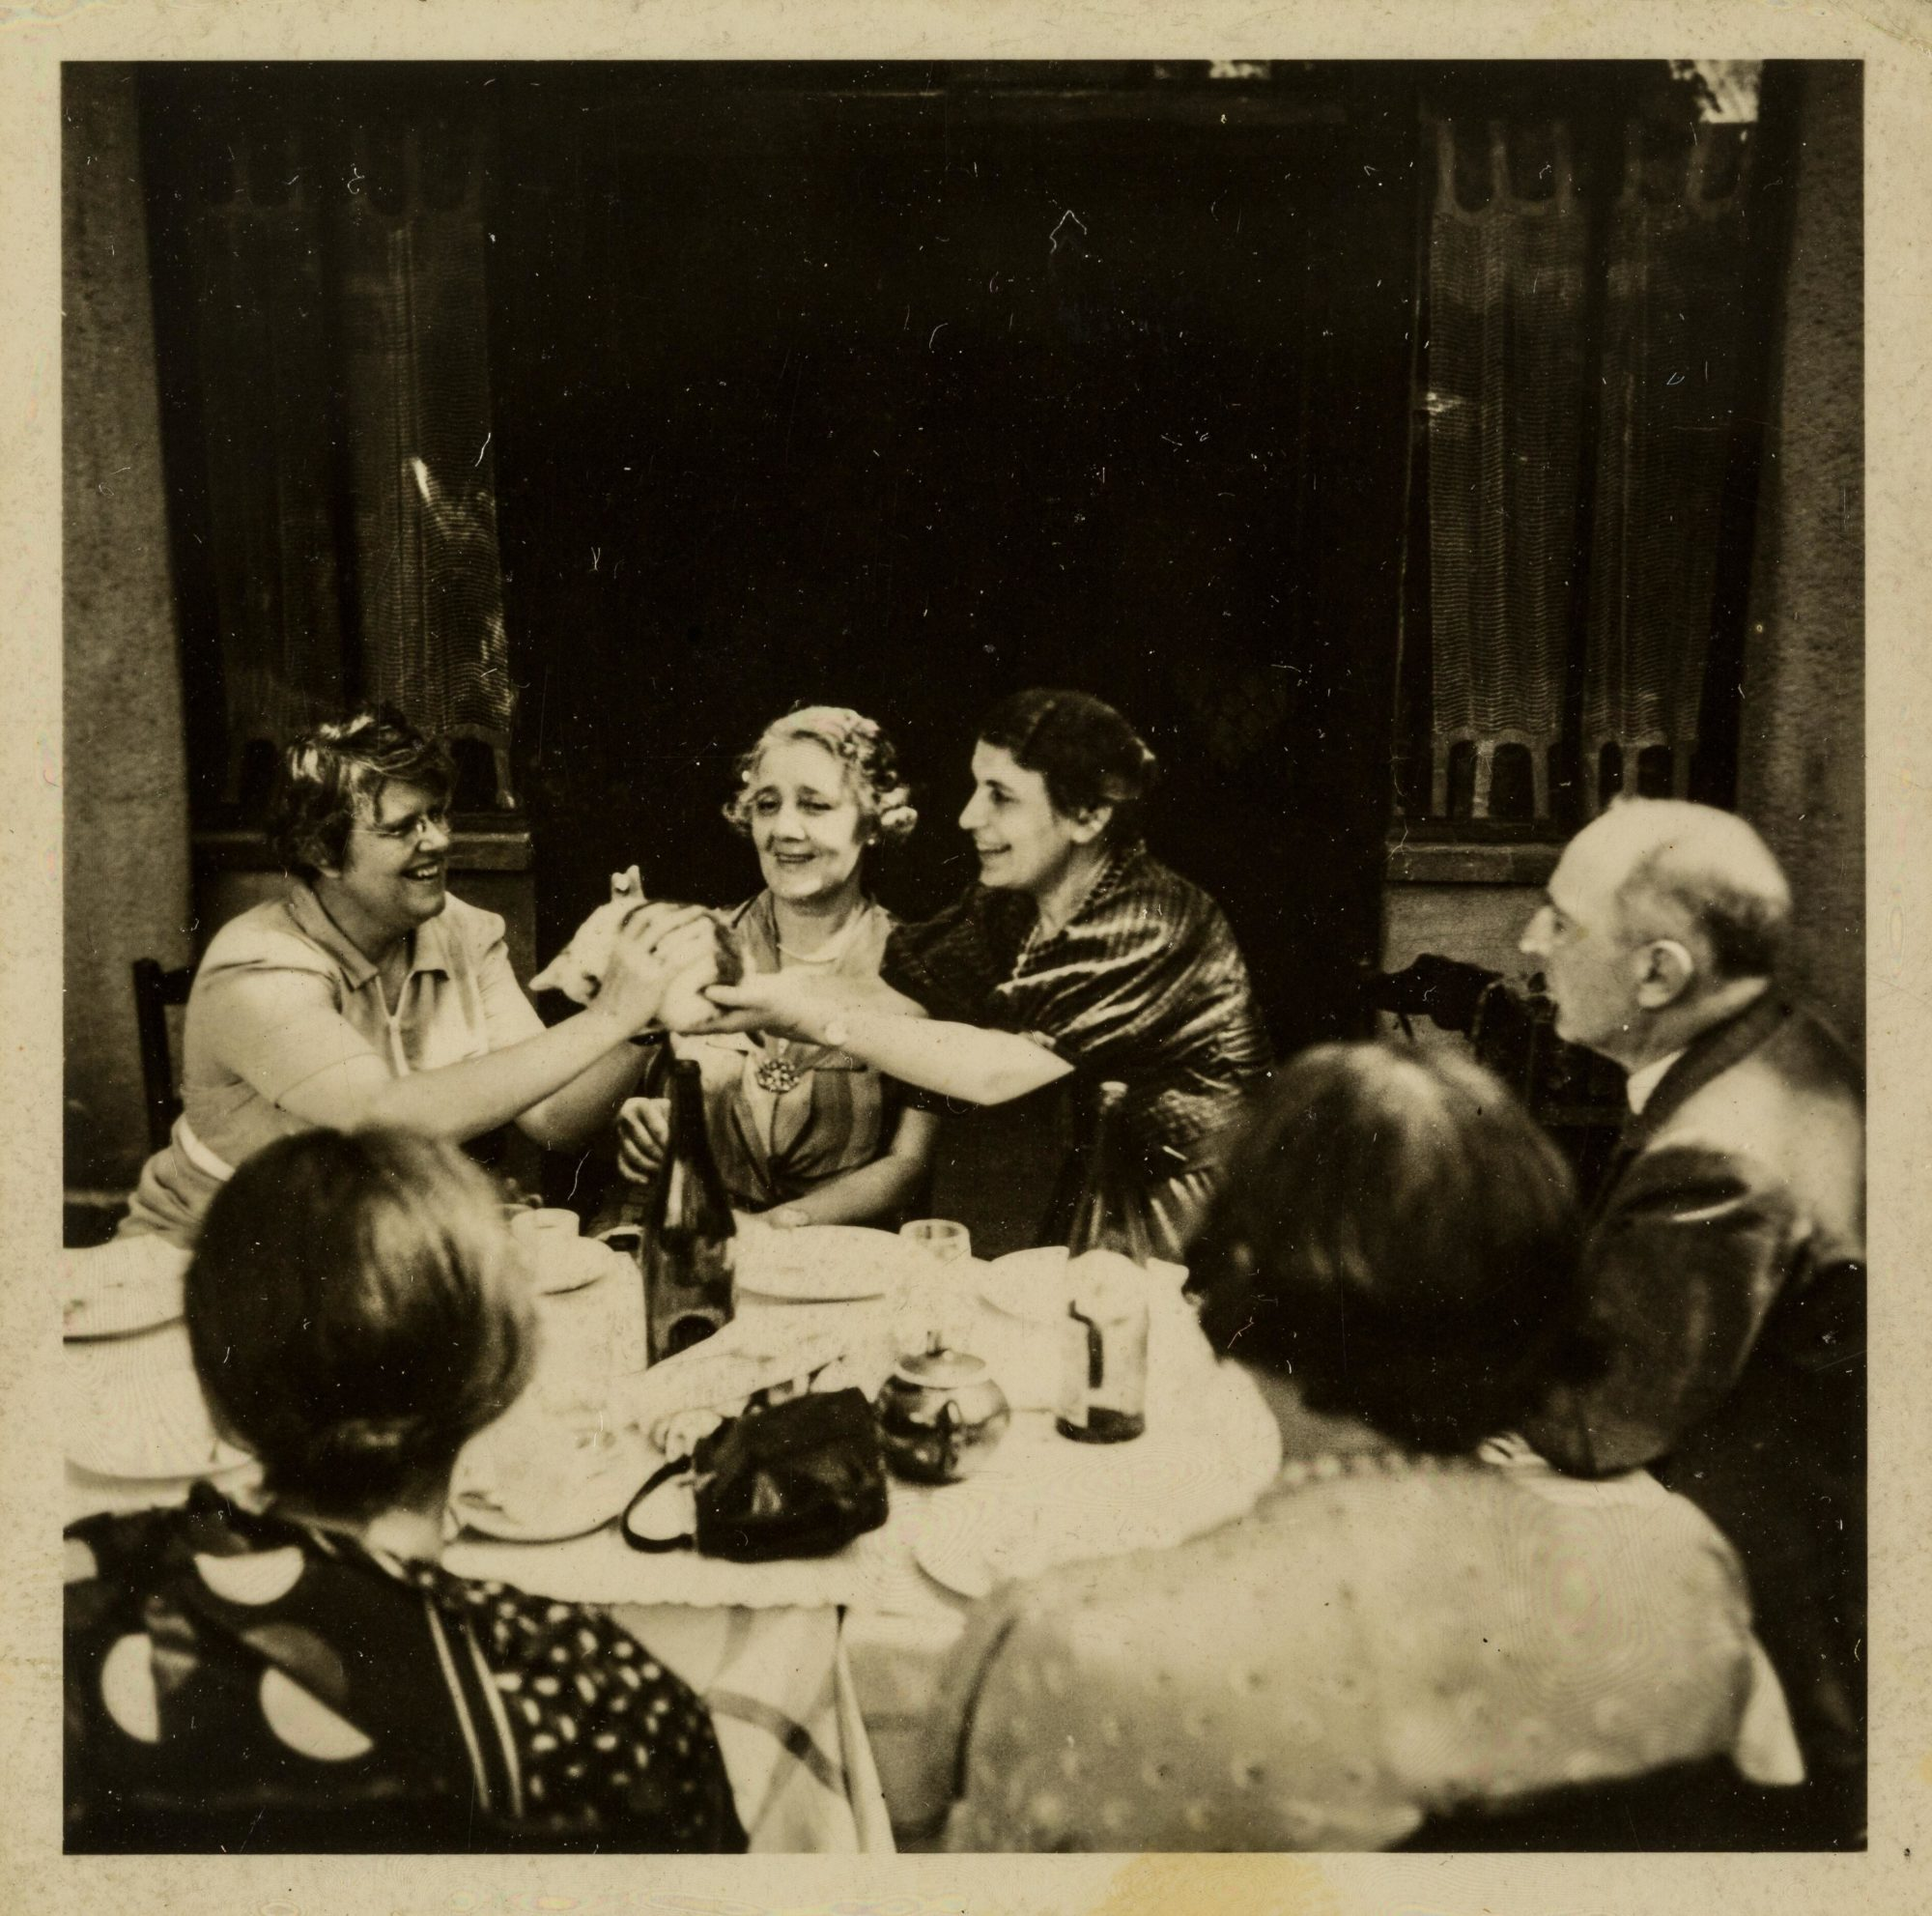 Photograph of Melanie Klein, Anna Freud and Ernest Jones around 1948